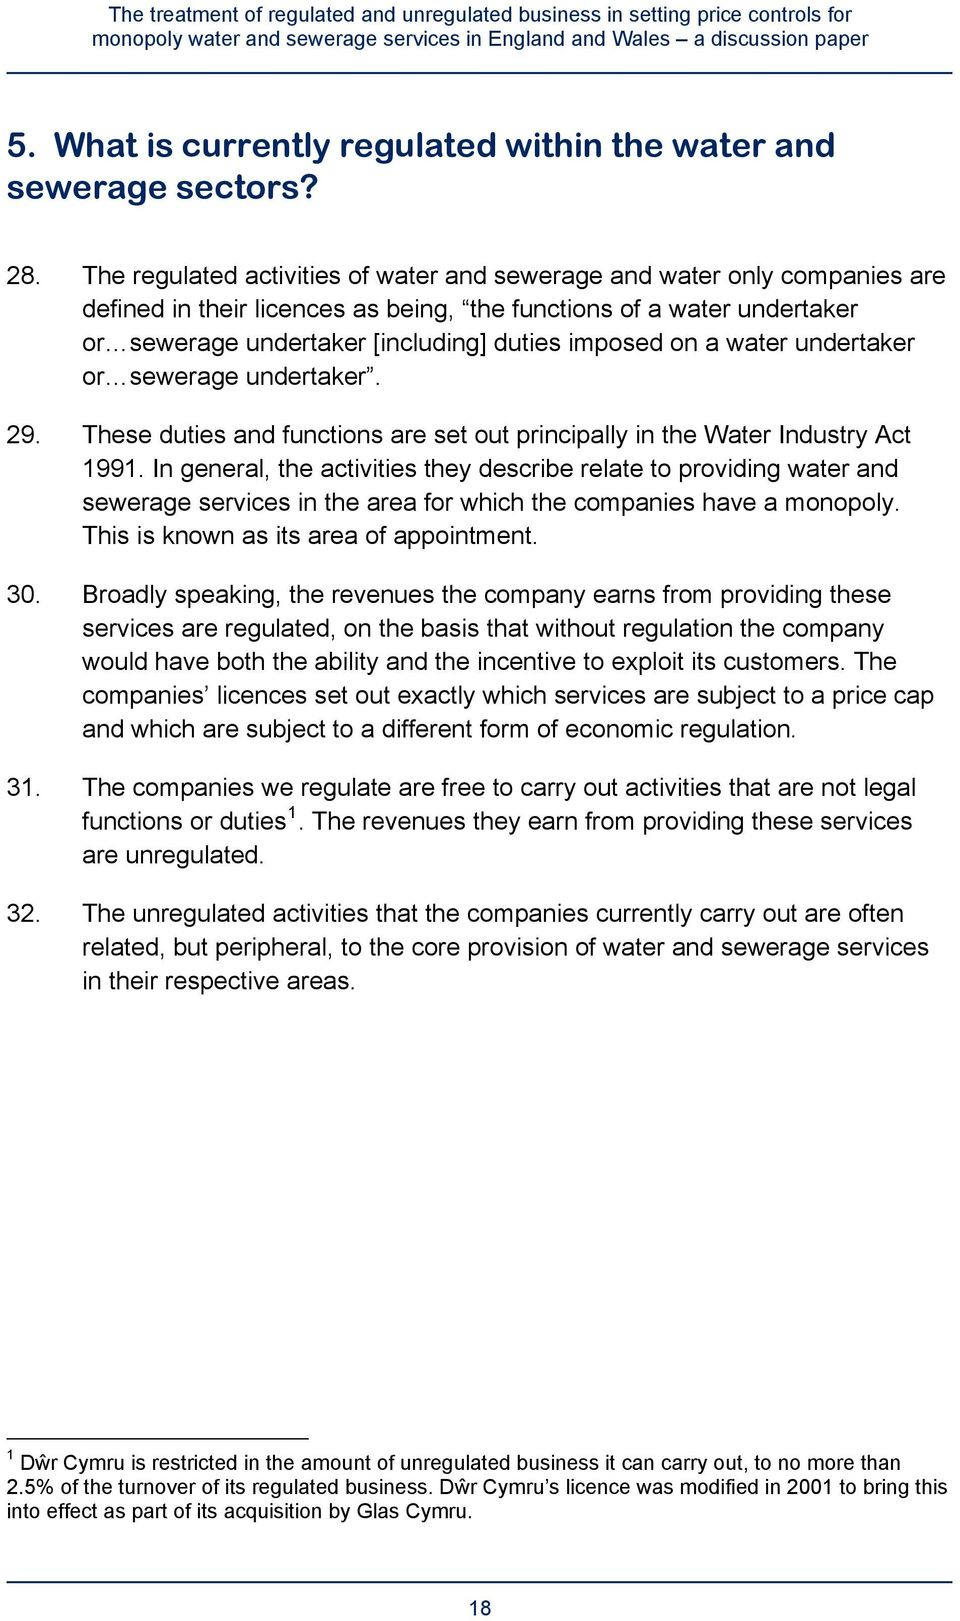 on a water undertaker or sewerage undertaker. 29. These duties and functions are set out principally in the Water Industry Act 1991.